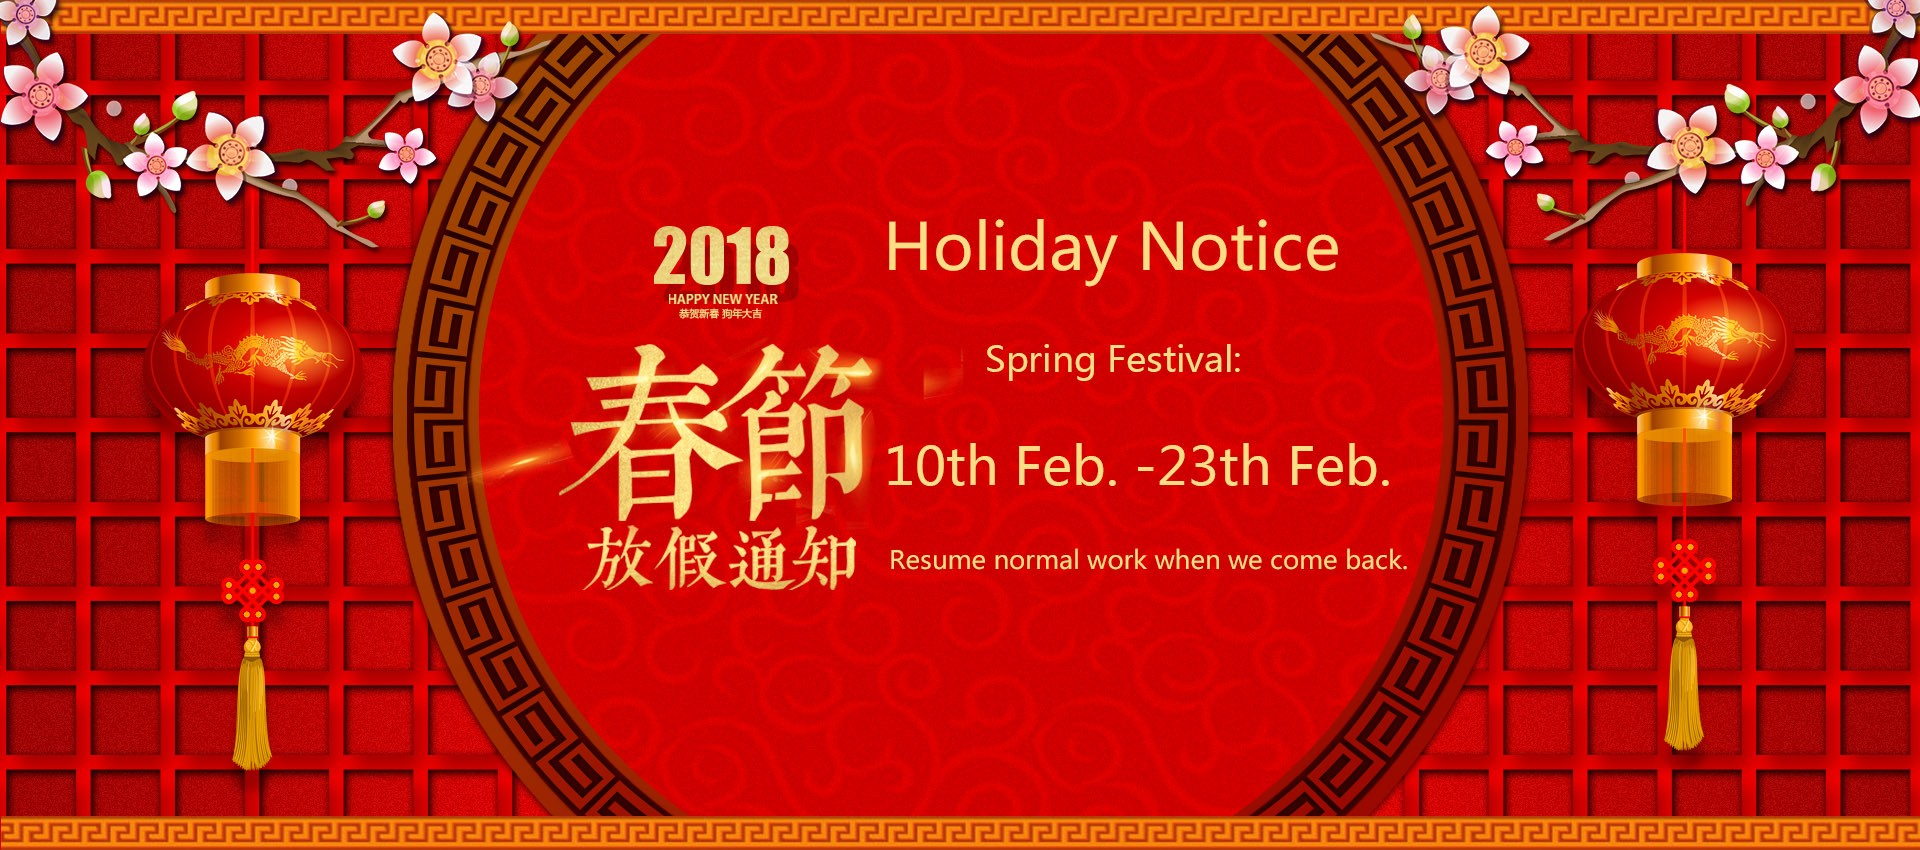 Holiday Notice-2018.jpg